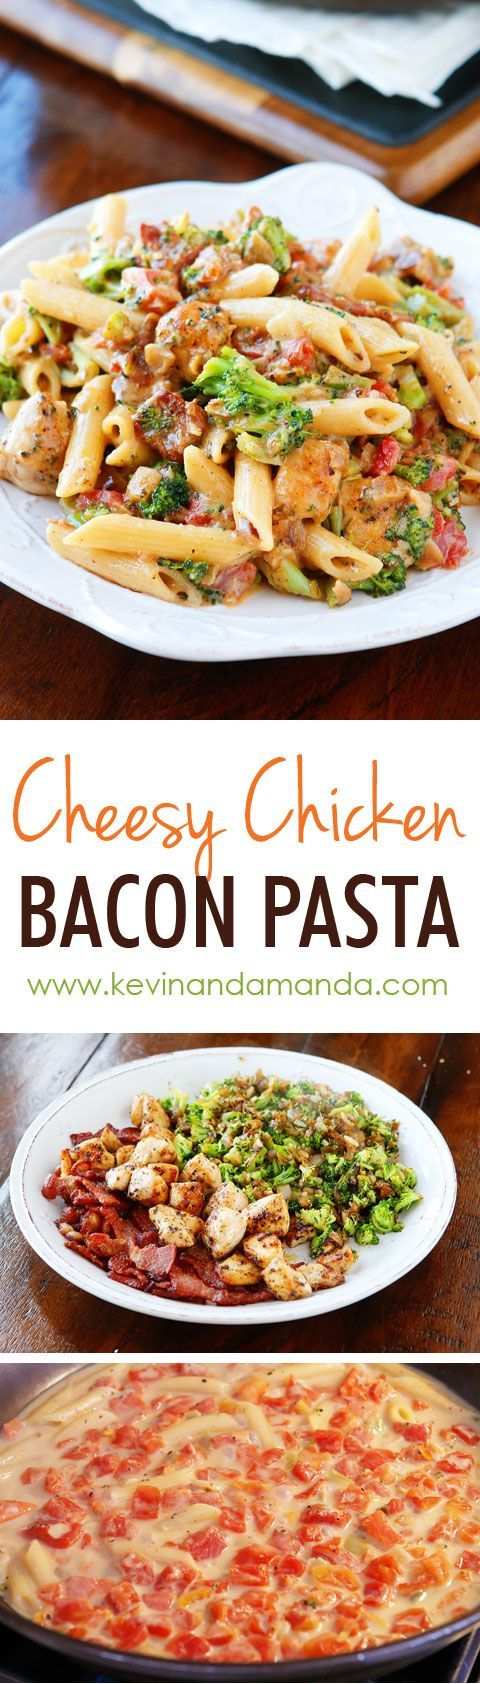 This is like an ultra creamy, cheesy broccoli soup with bacon, chicken, and pasta!! Seriously what on earth could be better? Cheesy. Bacon. Pasta.